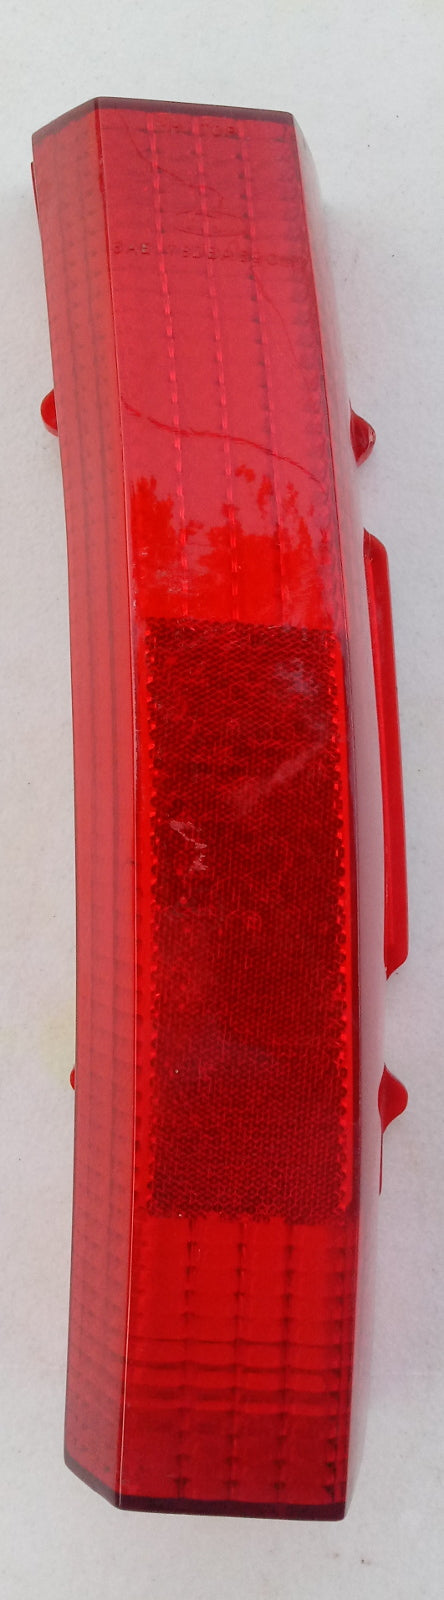 1969 Ford wagon taillight lens